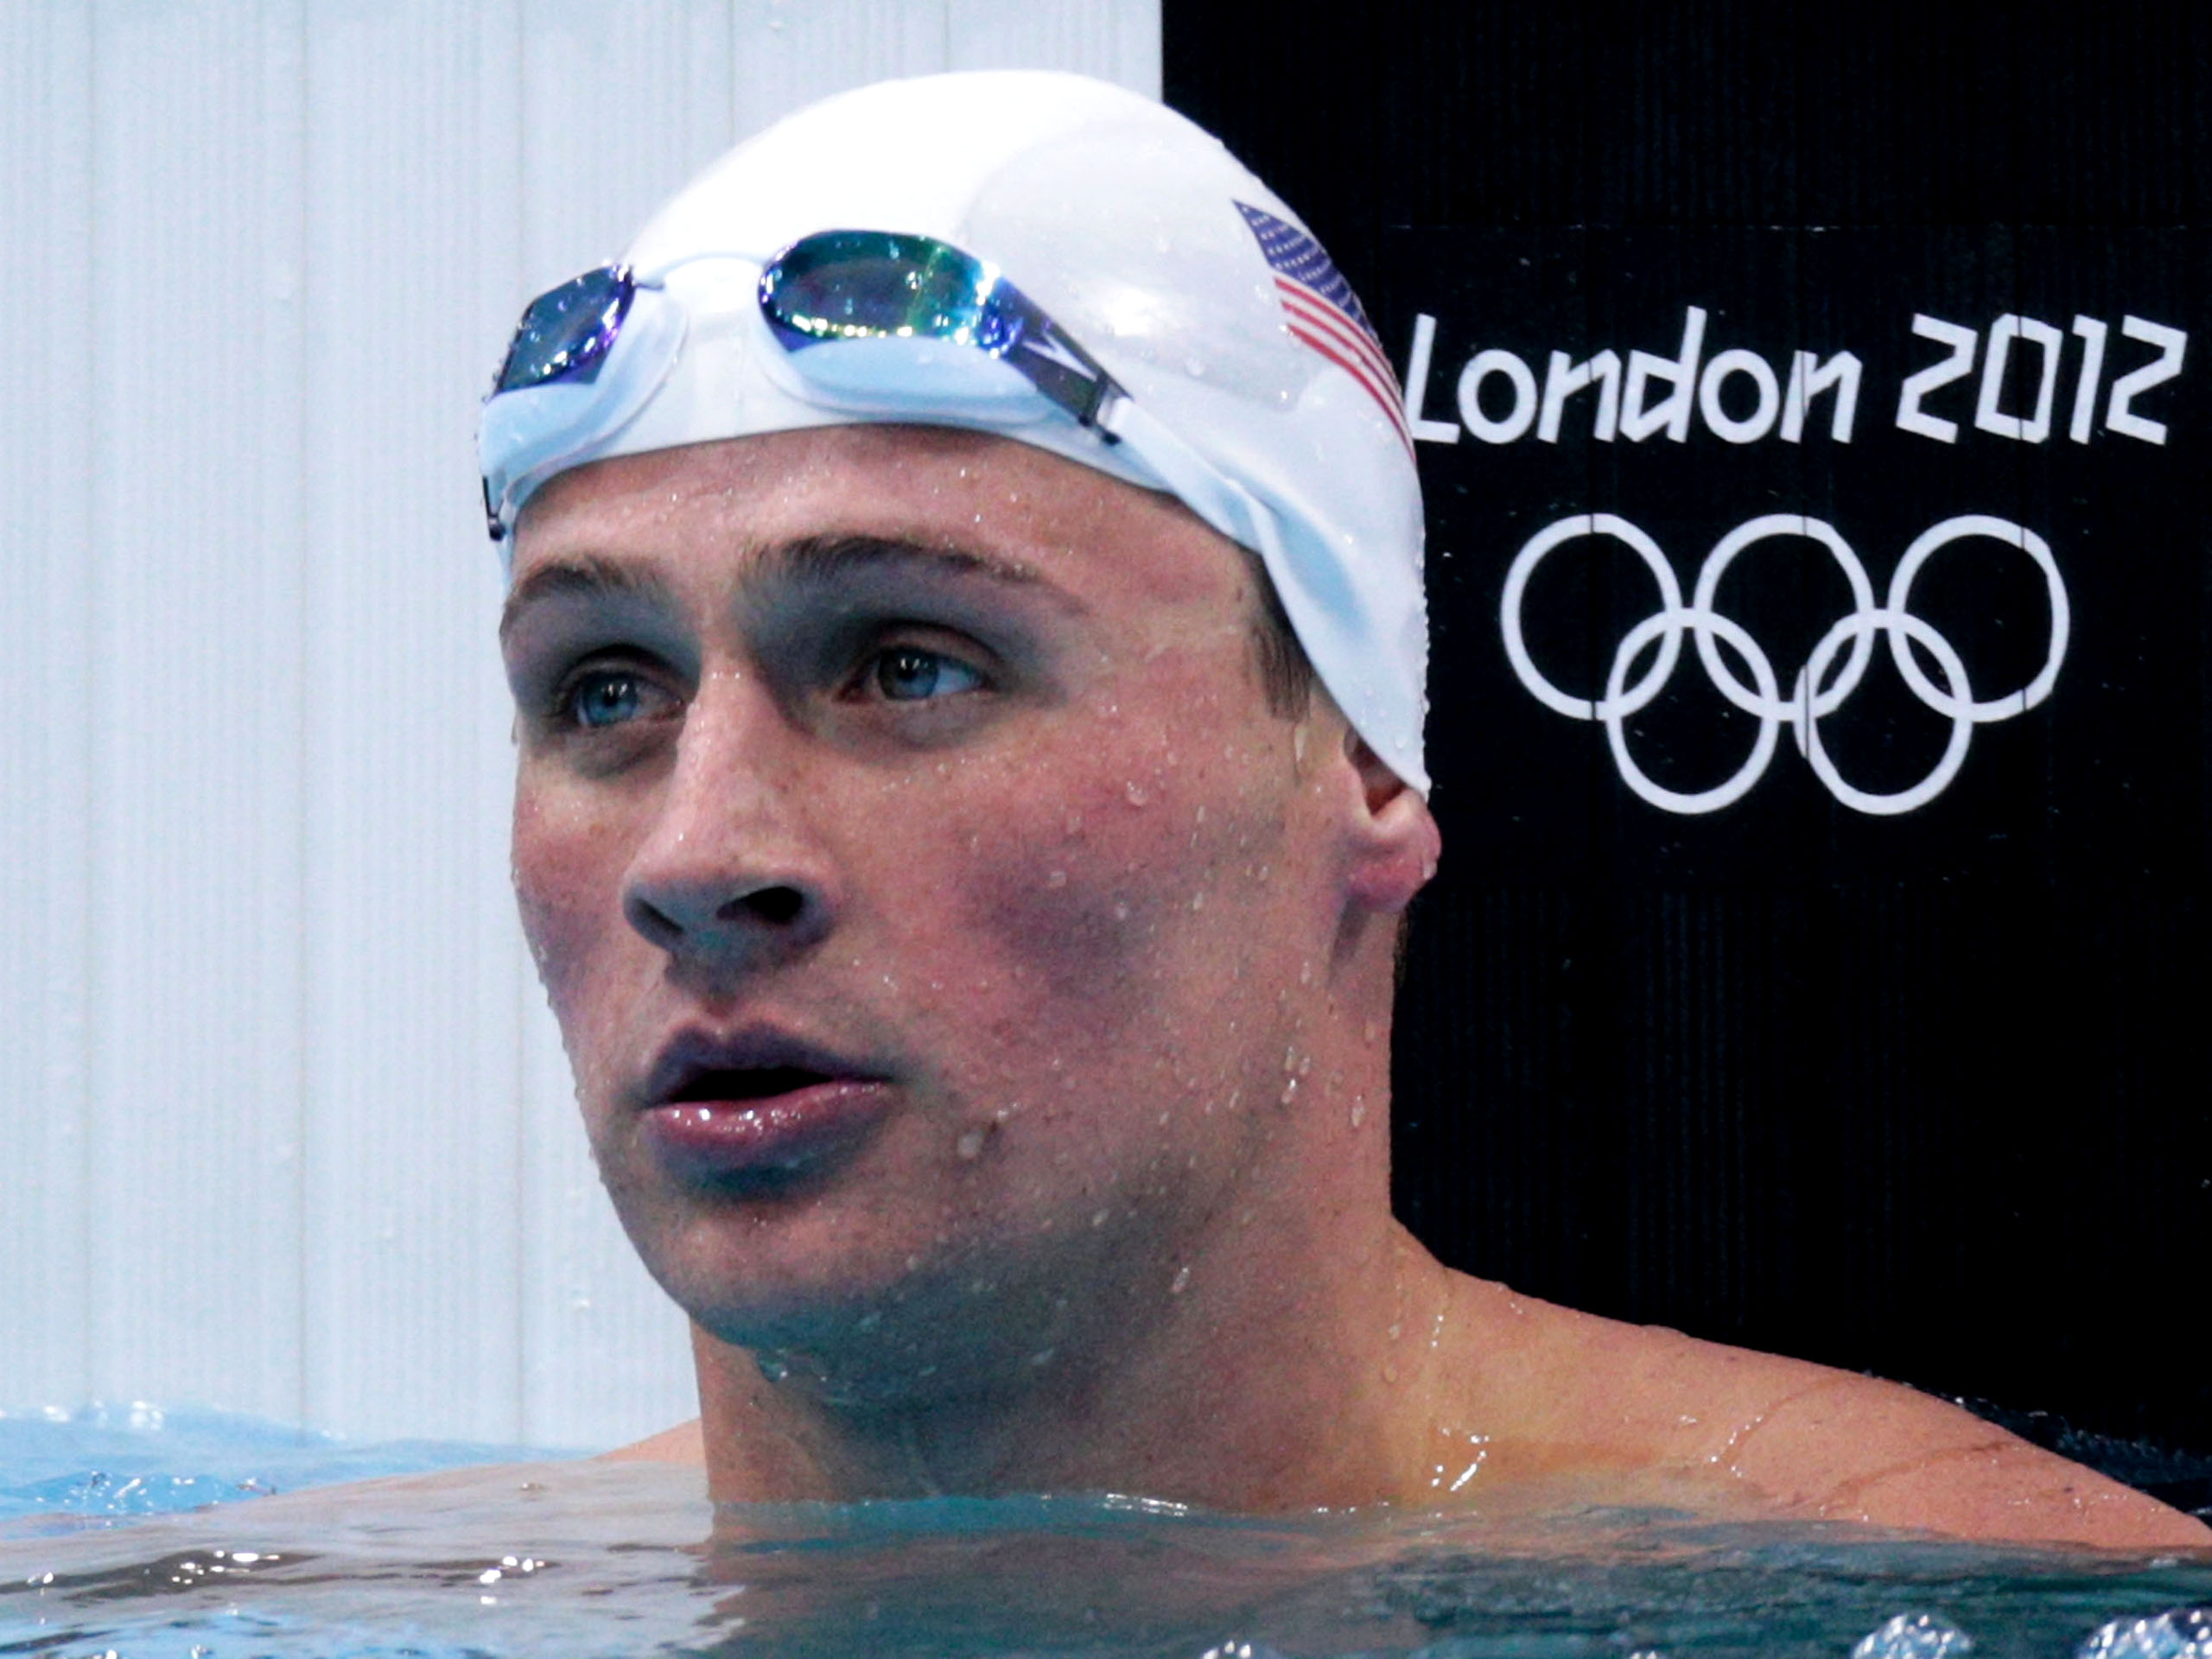 Ryan Lochte high quality background